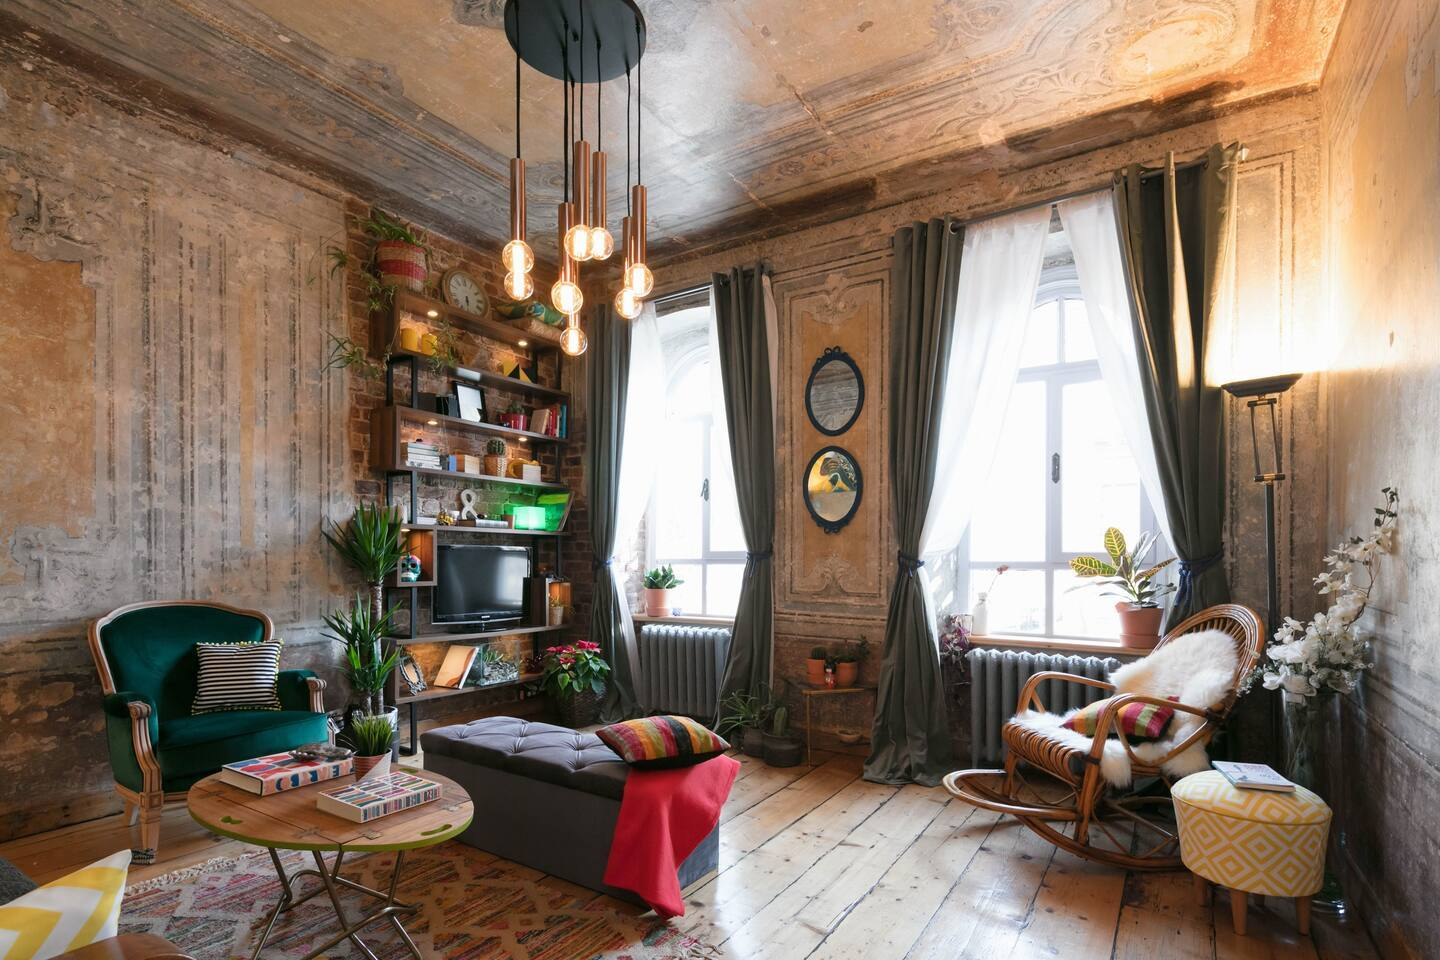 19th Century Luxury Loft